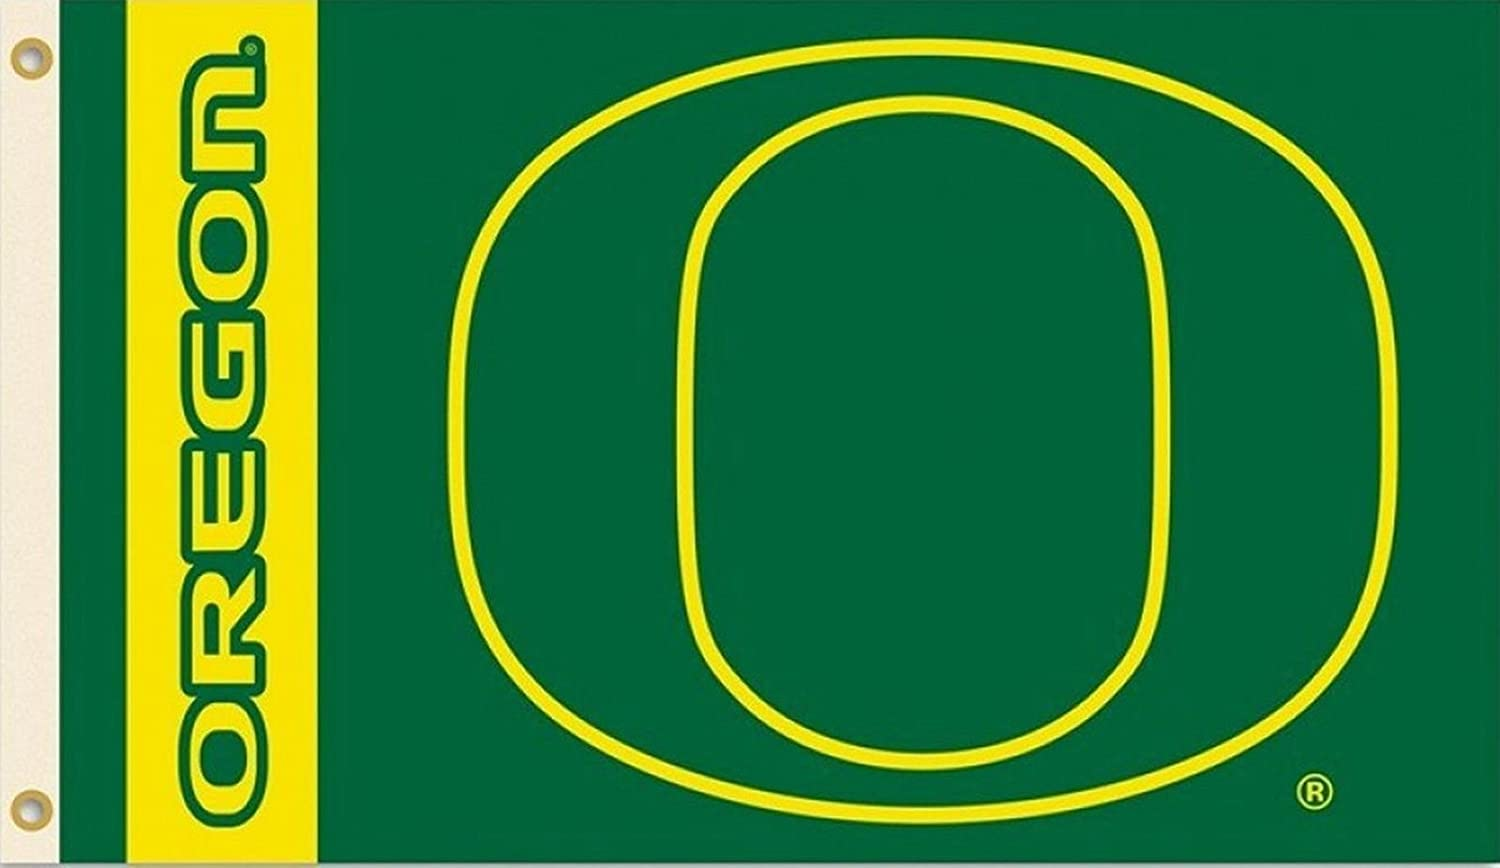 Ncaa Oregon Ducks 3 By 5 Foot Flag With Grommets by Bsi